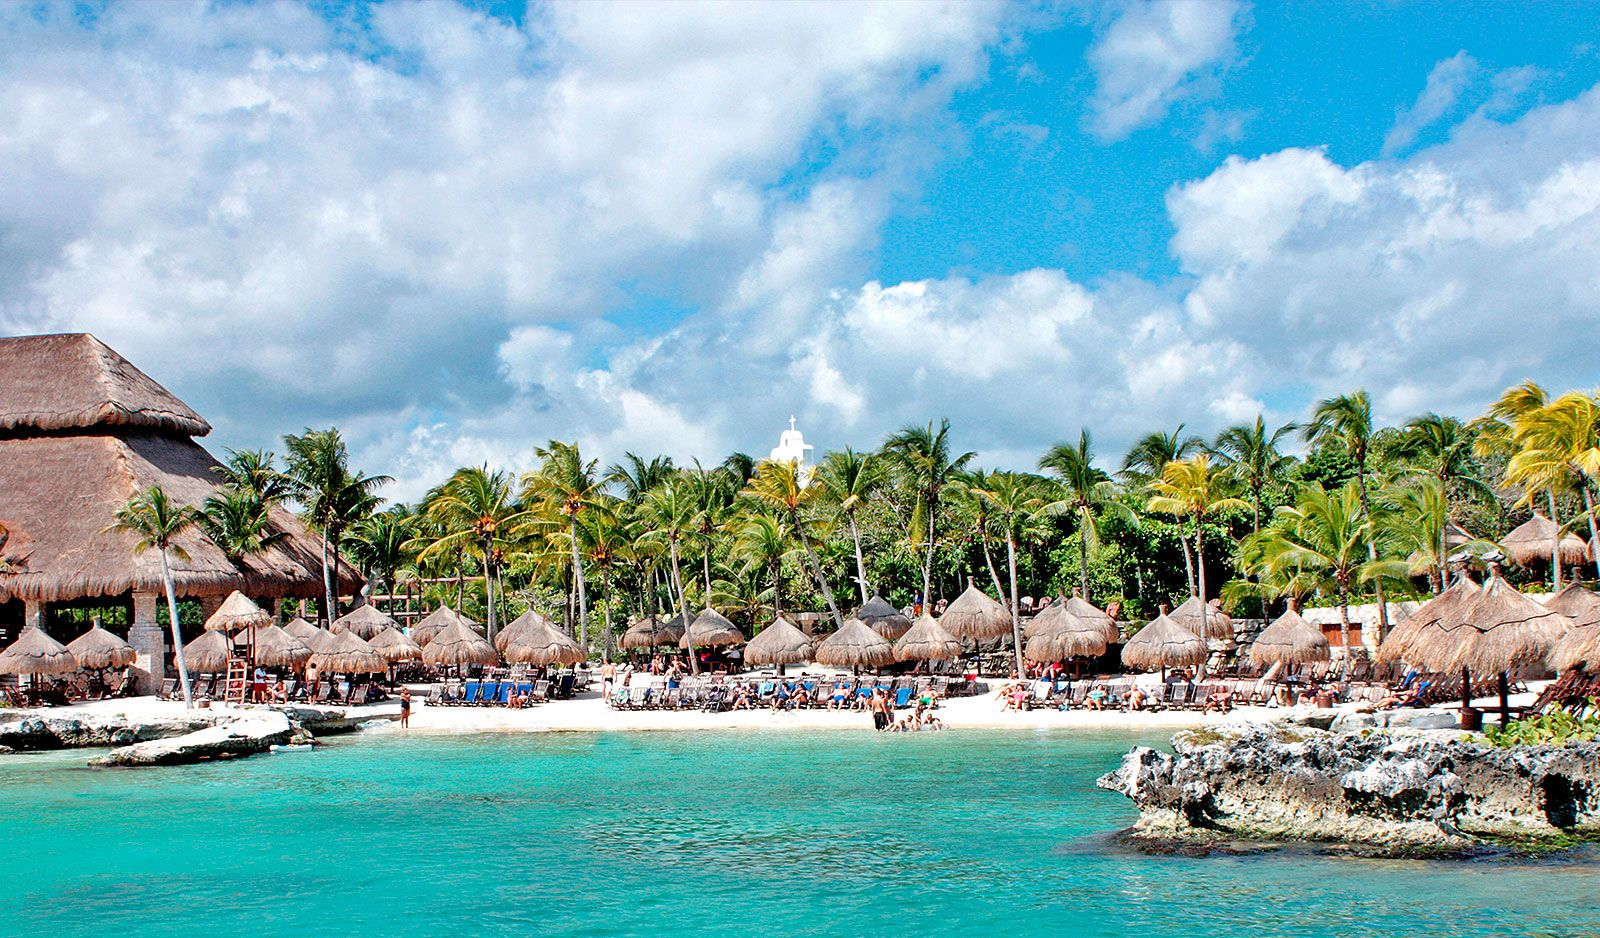 Hotels In Cancún For Usd 15 Night